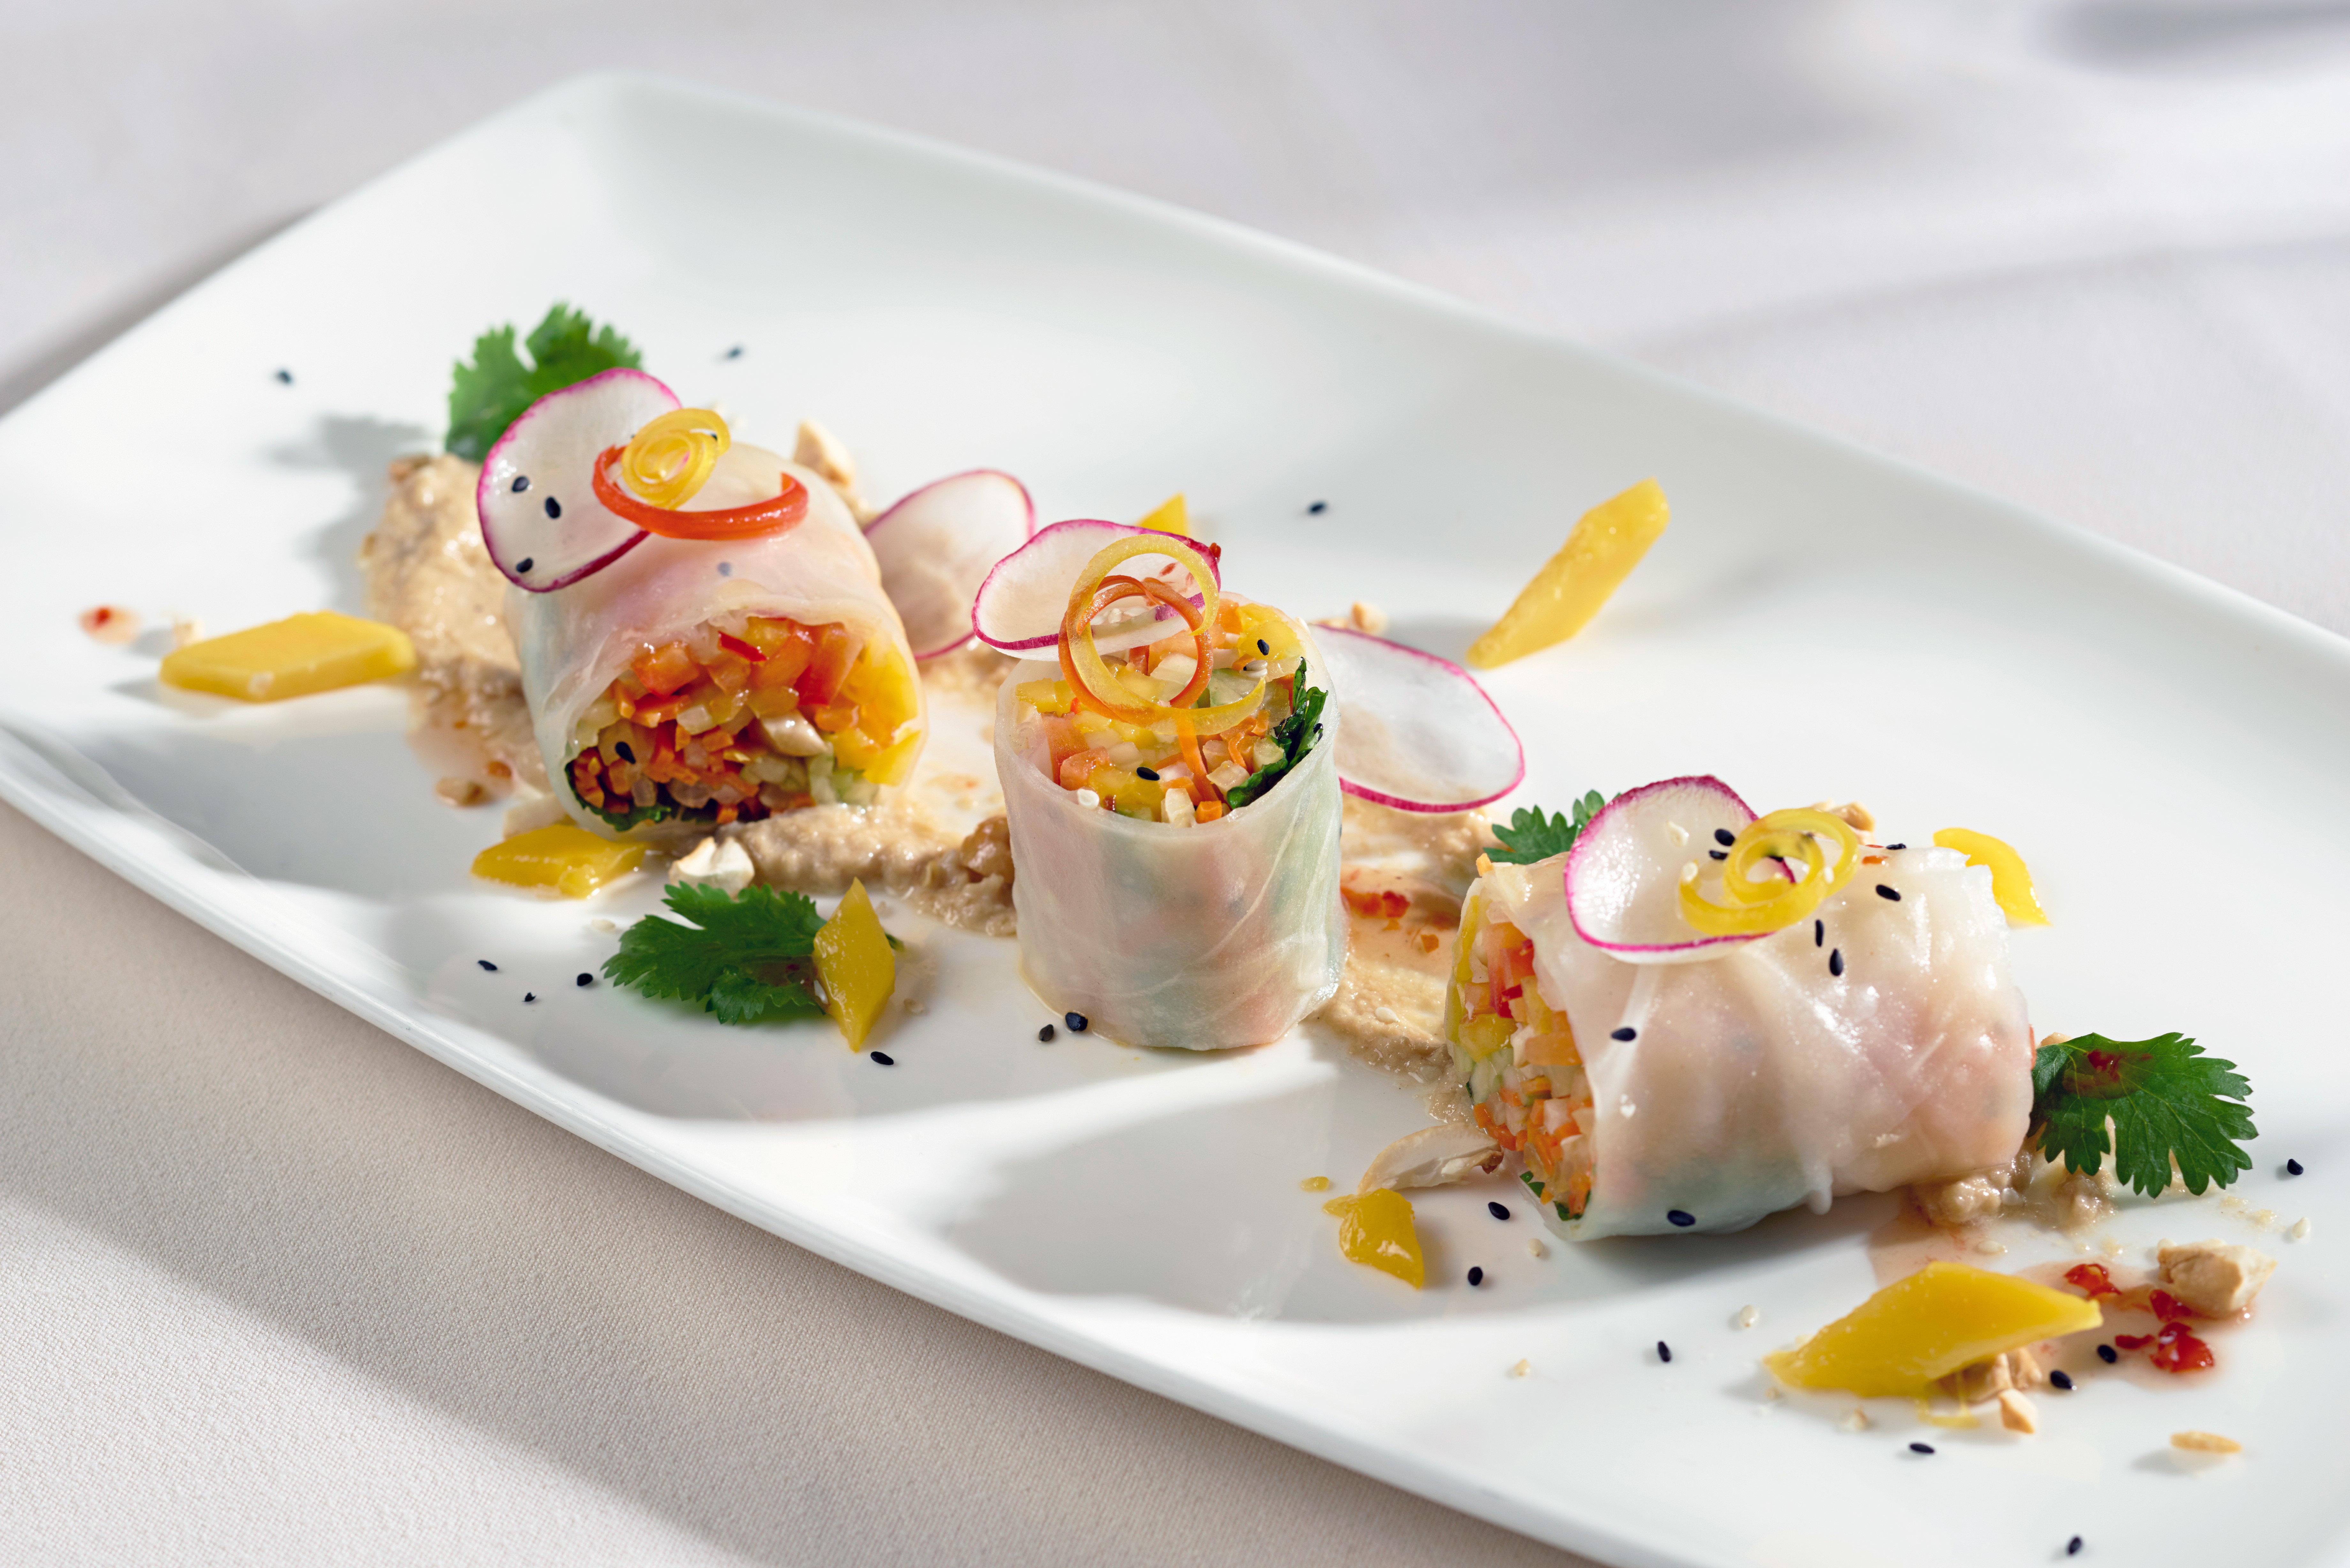 Dining Eat Elegant plate food hors d oeuvre cuisine smoked salmon white fish breakfast sense restaurant culinary art canapé